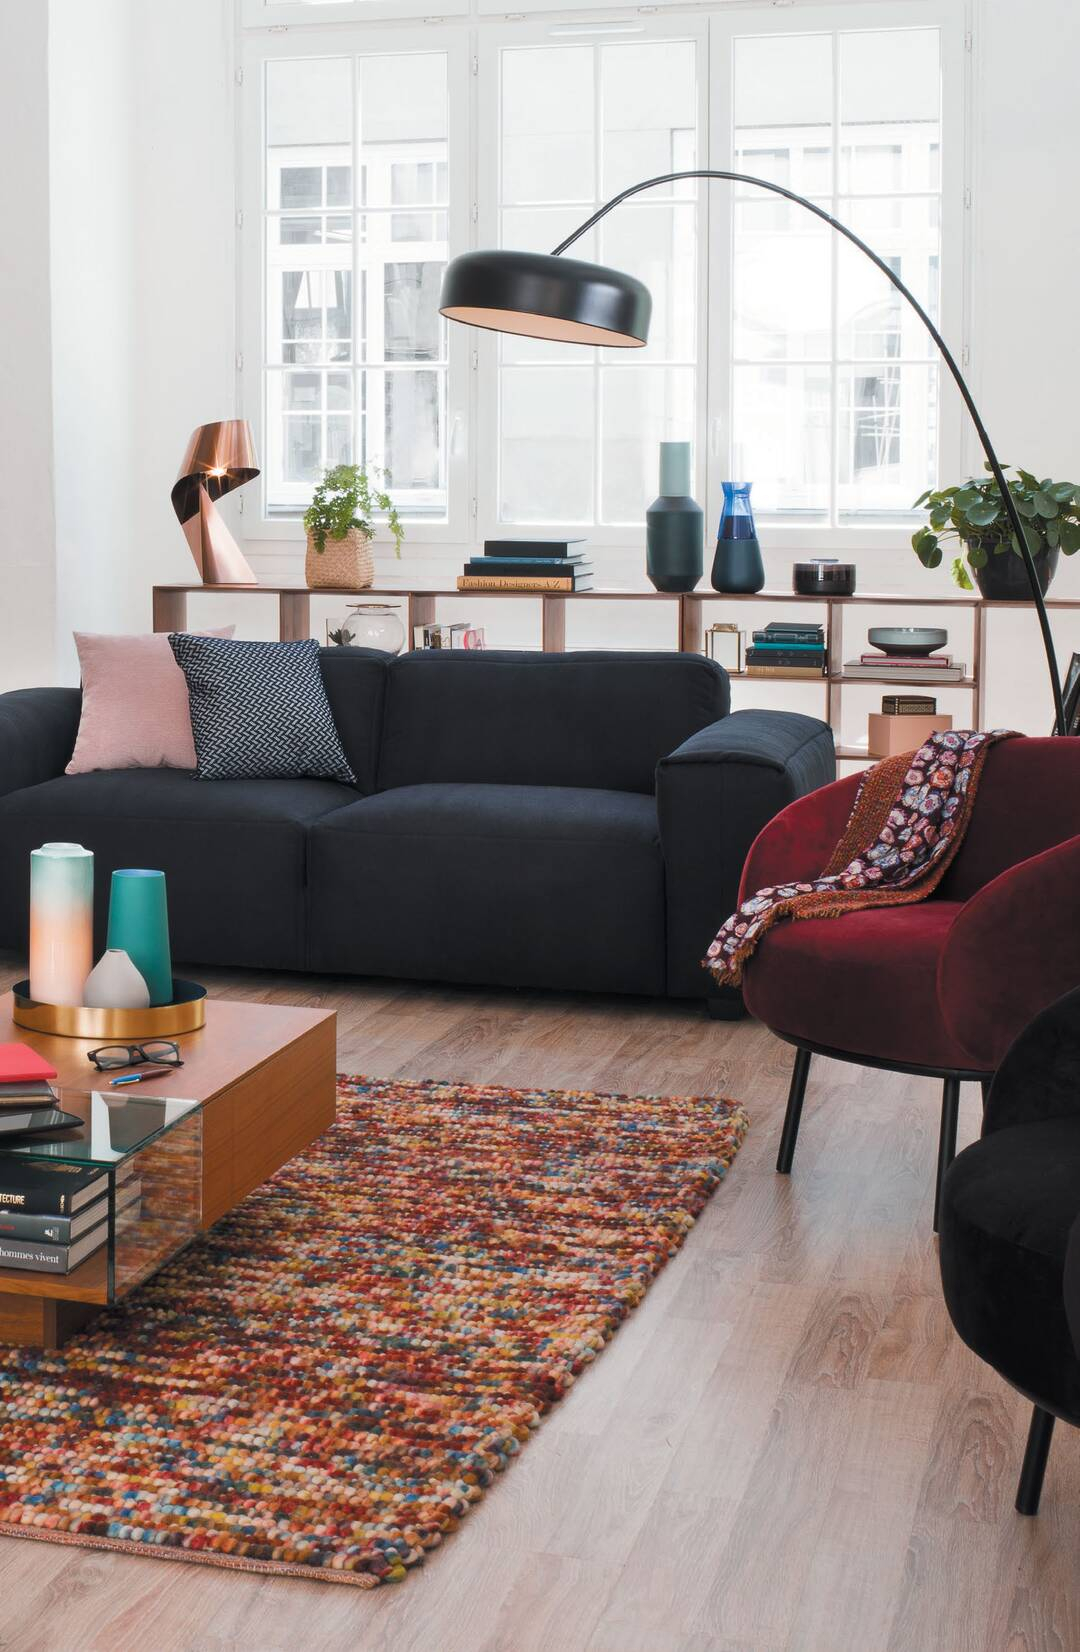 Sofas & Armchairs – Issuu With Regard To Kasha Armchairs (View 13 of 15)